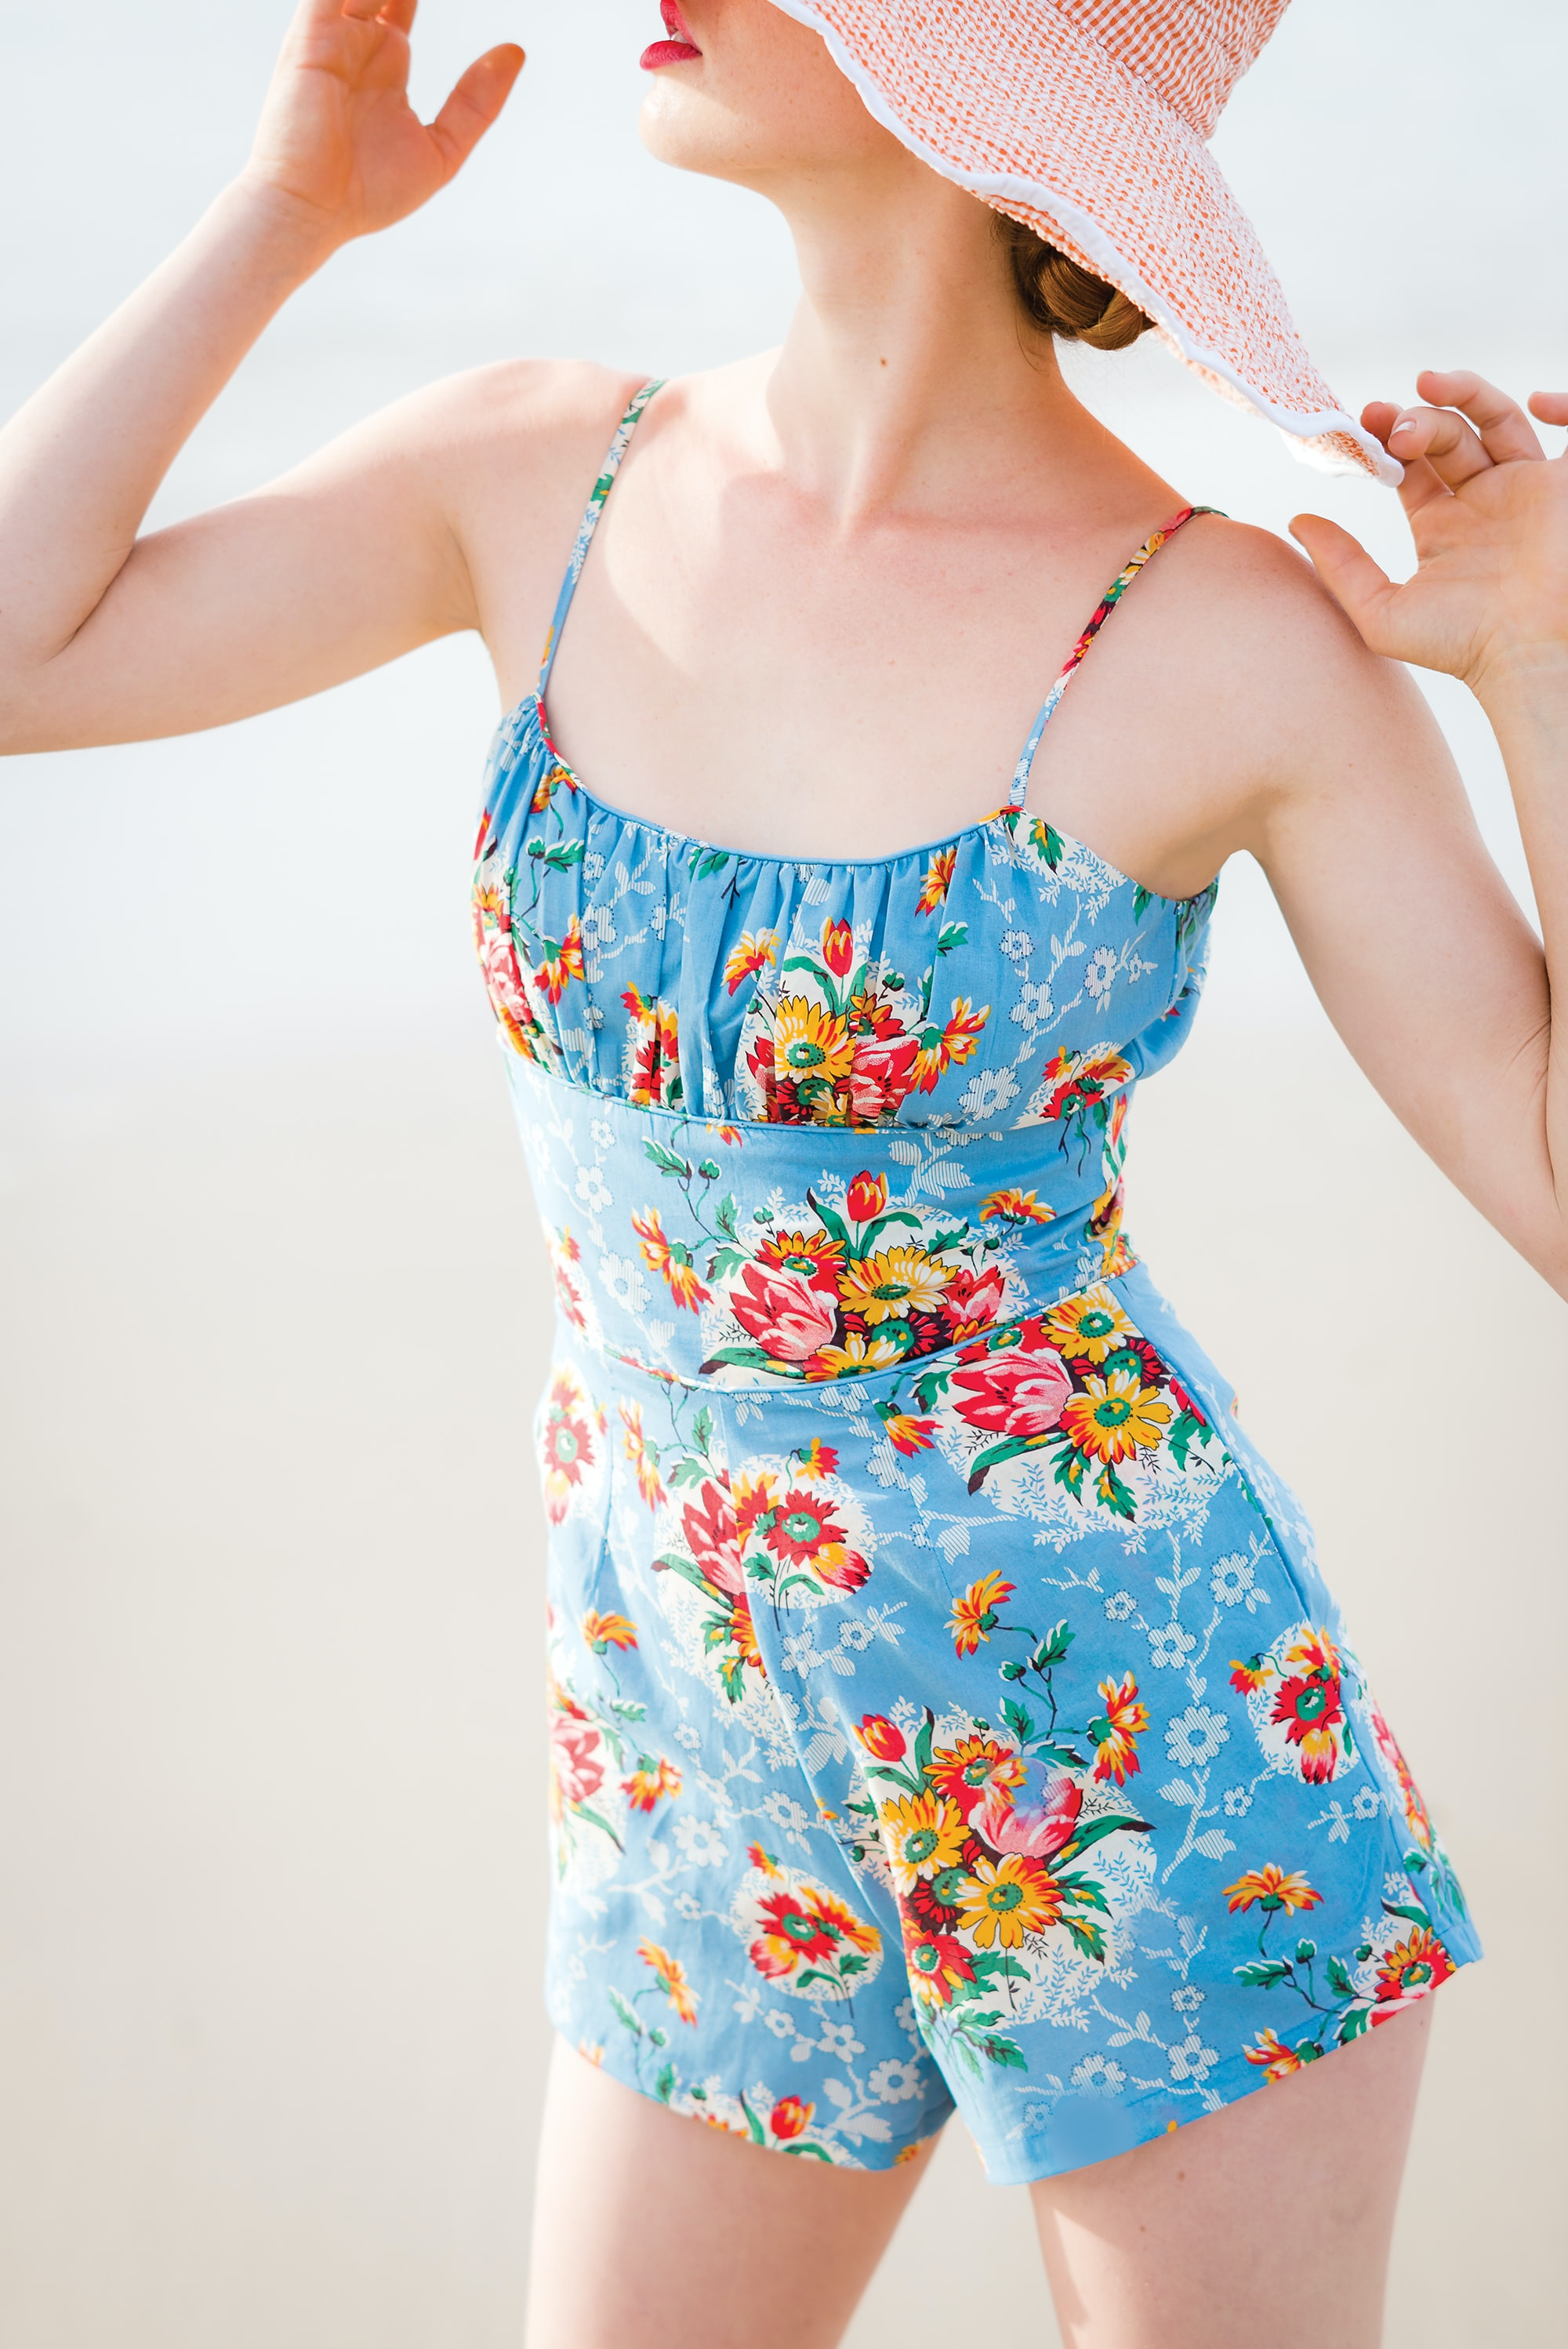 woman wearing blue floral rompers and brown hat